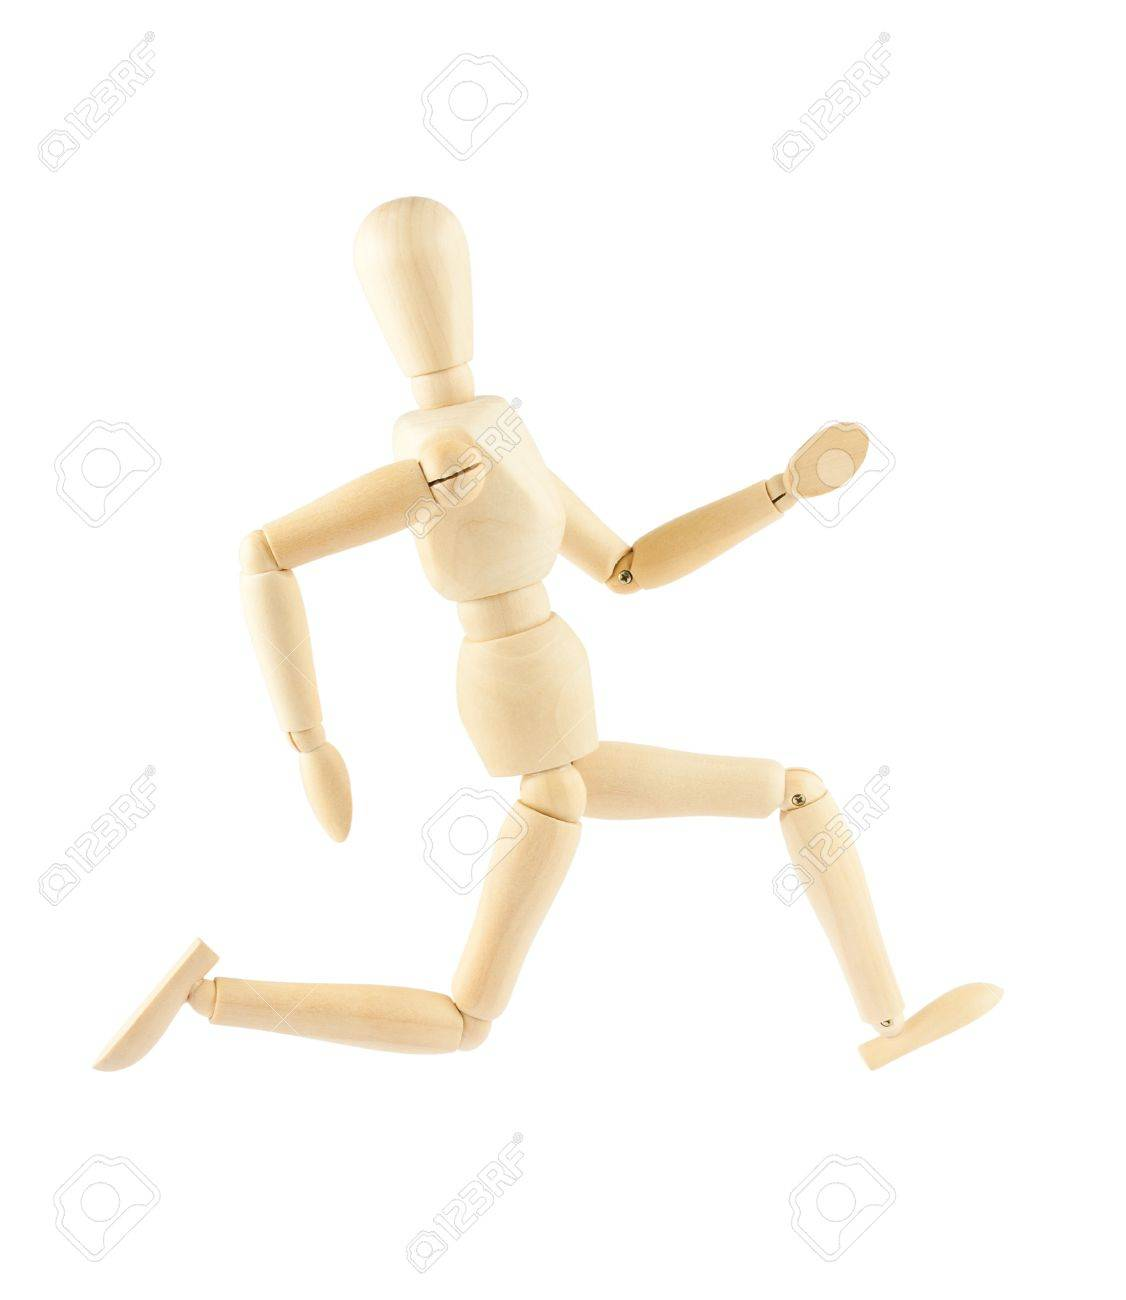 wooden mannequin running isolated on white background stock photo